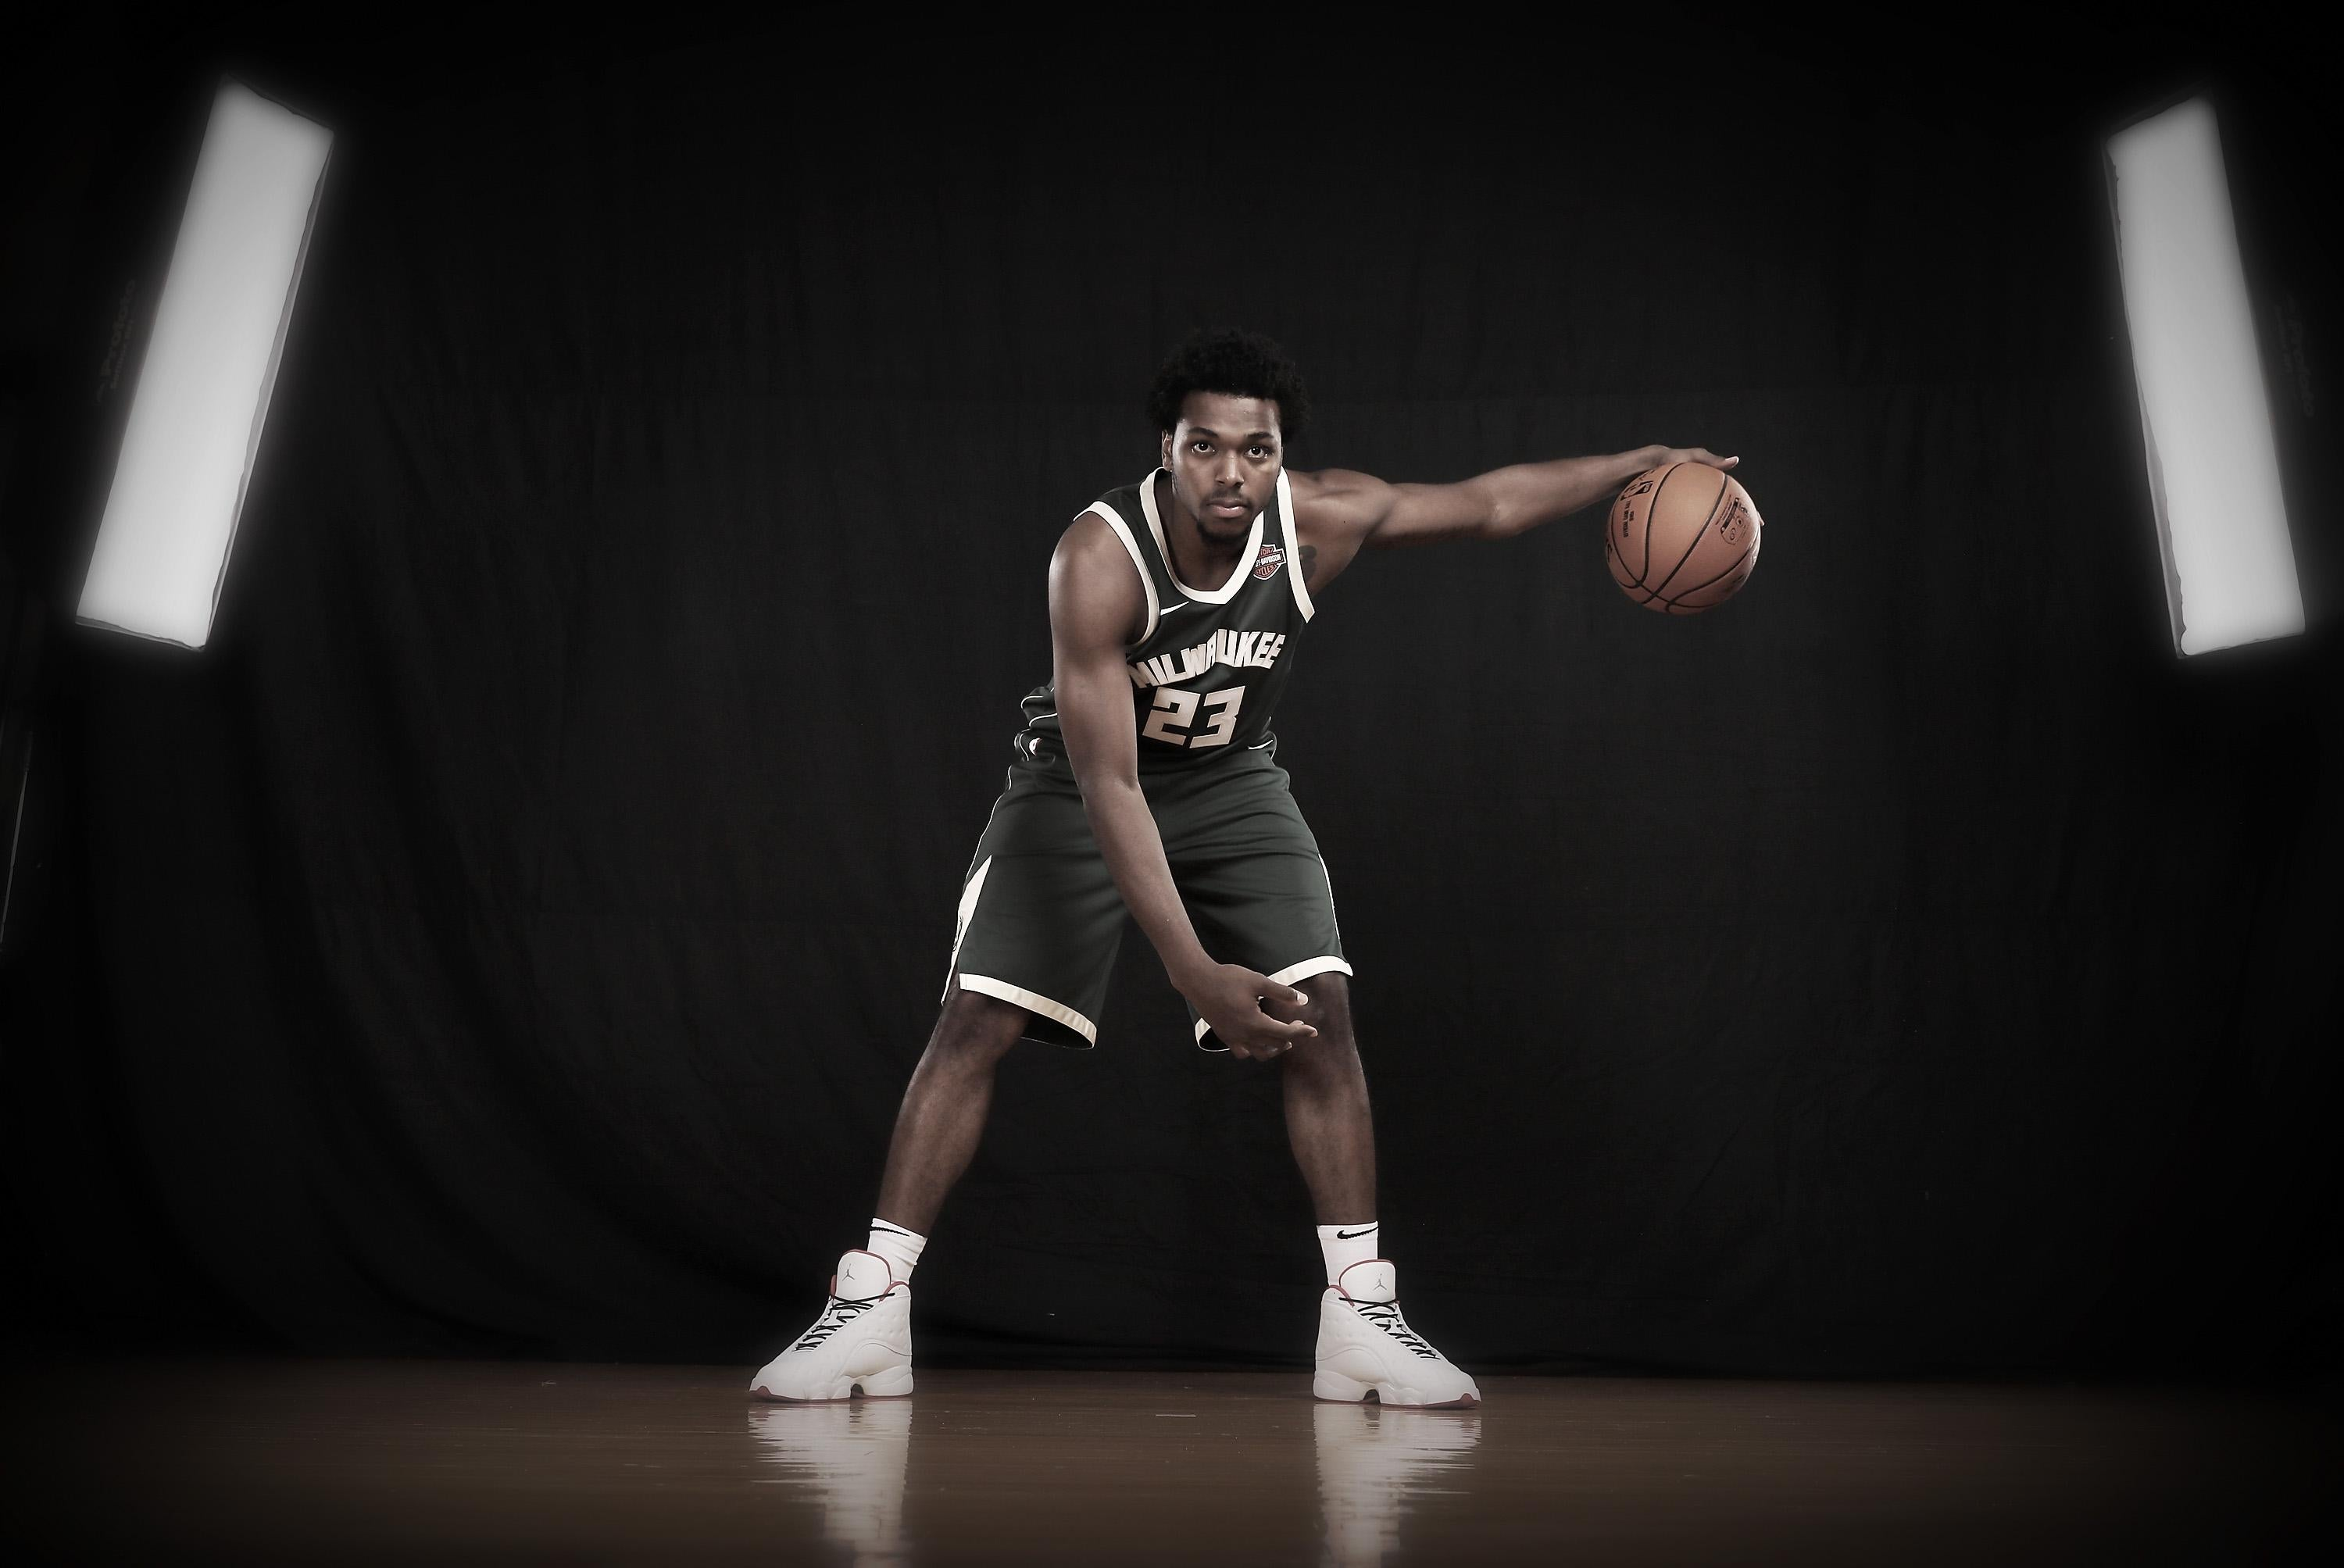 Milwaukee Bucks guard Sterling Brown dribbles a basketball against a black backdrop as part of a portrait during a photo shoot.